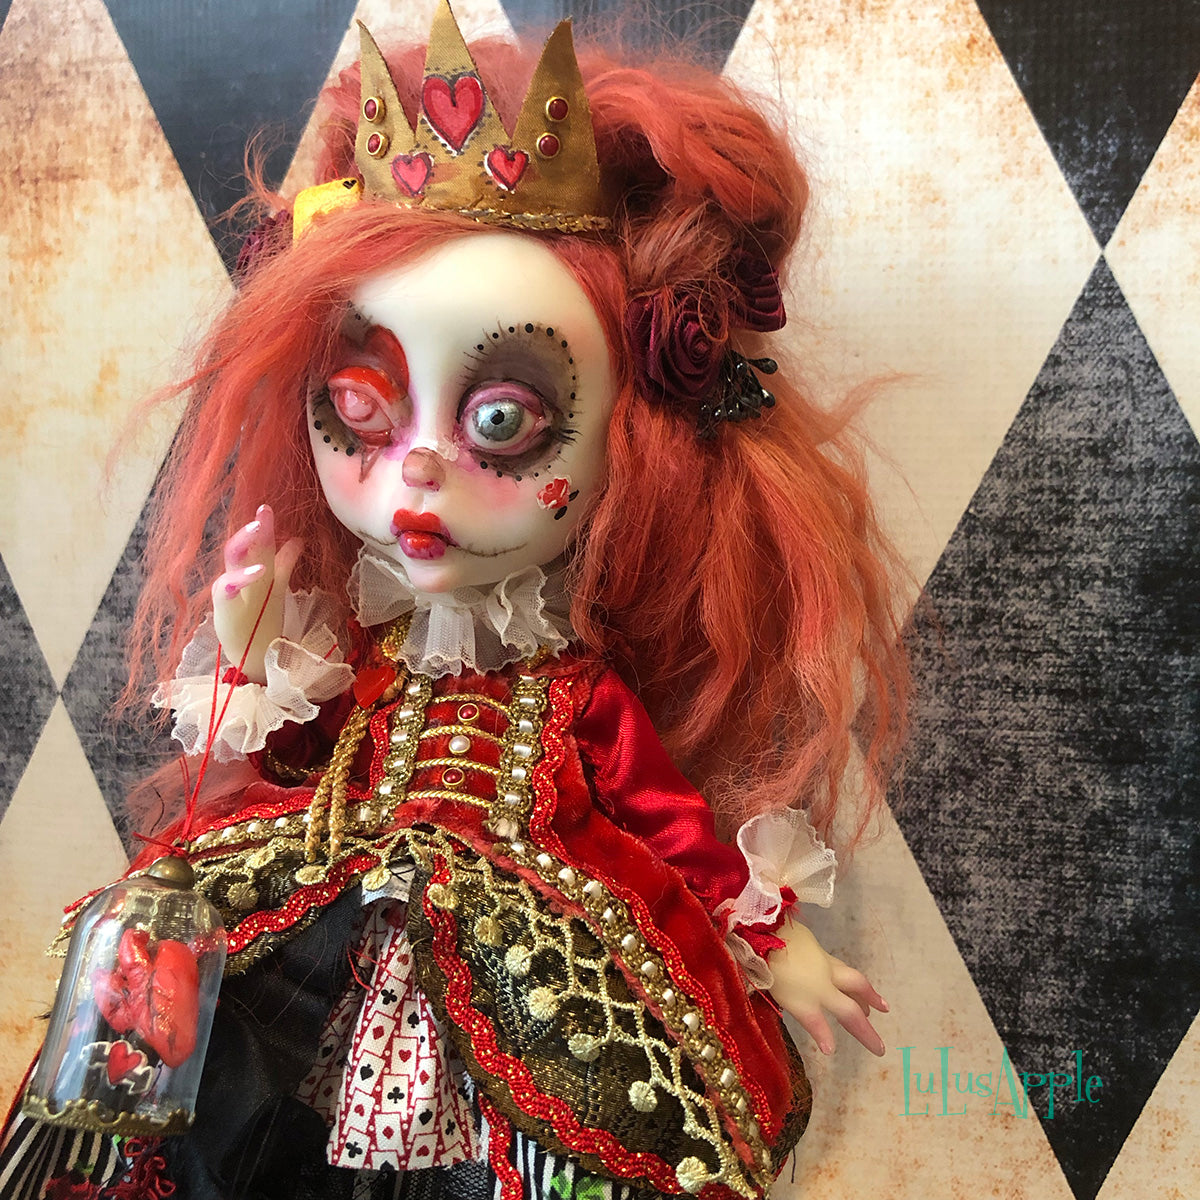 The Queen Wonderland Mashup OOAK LuLusApple Art Doll